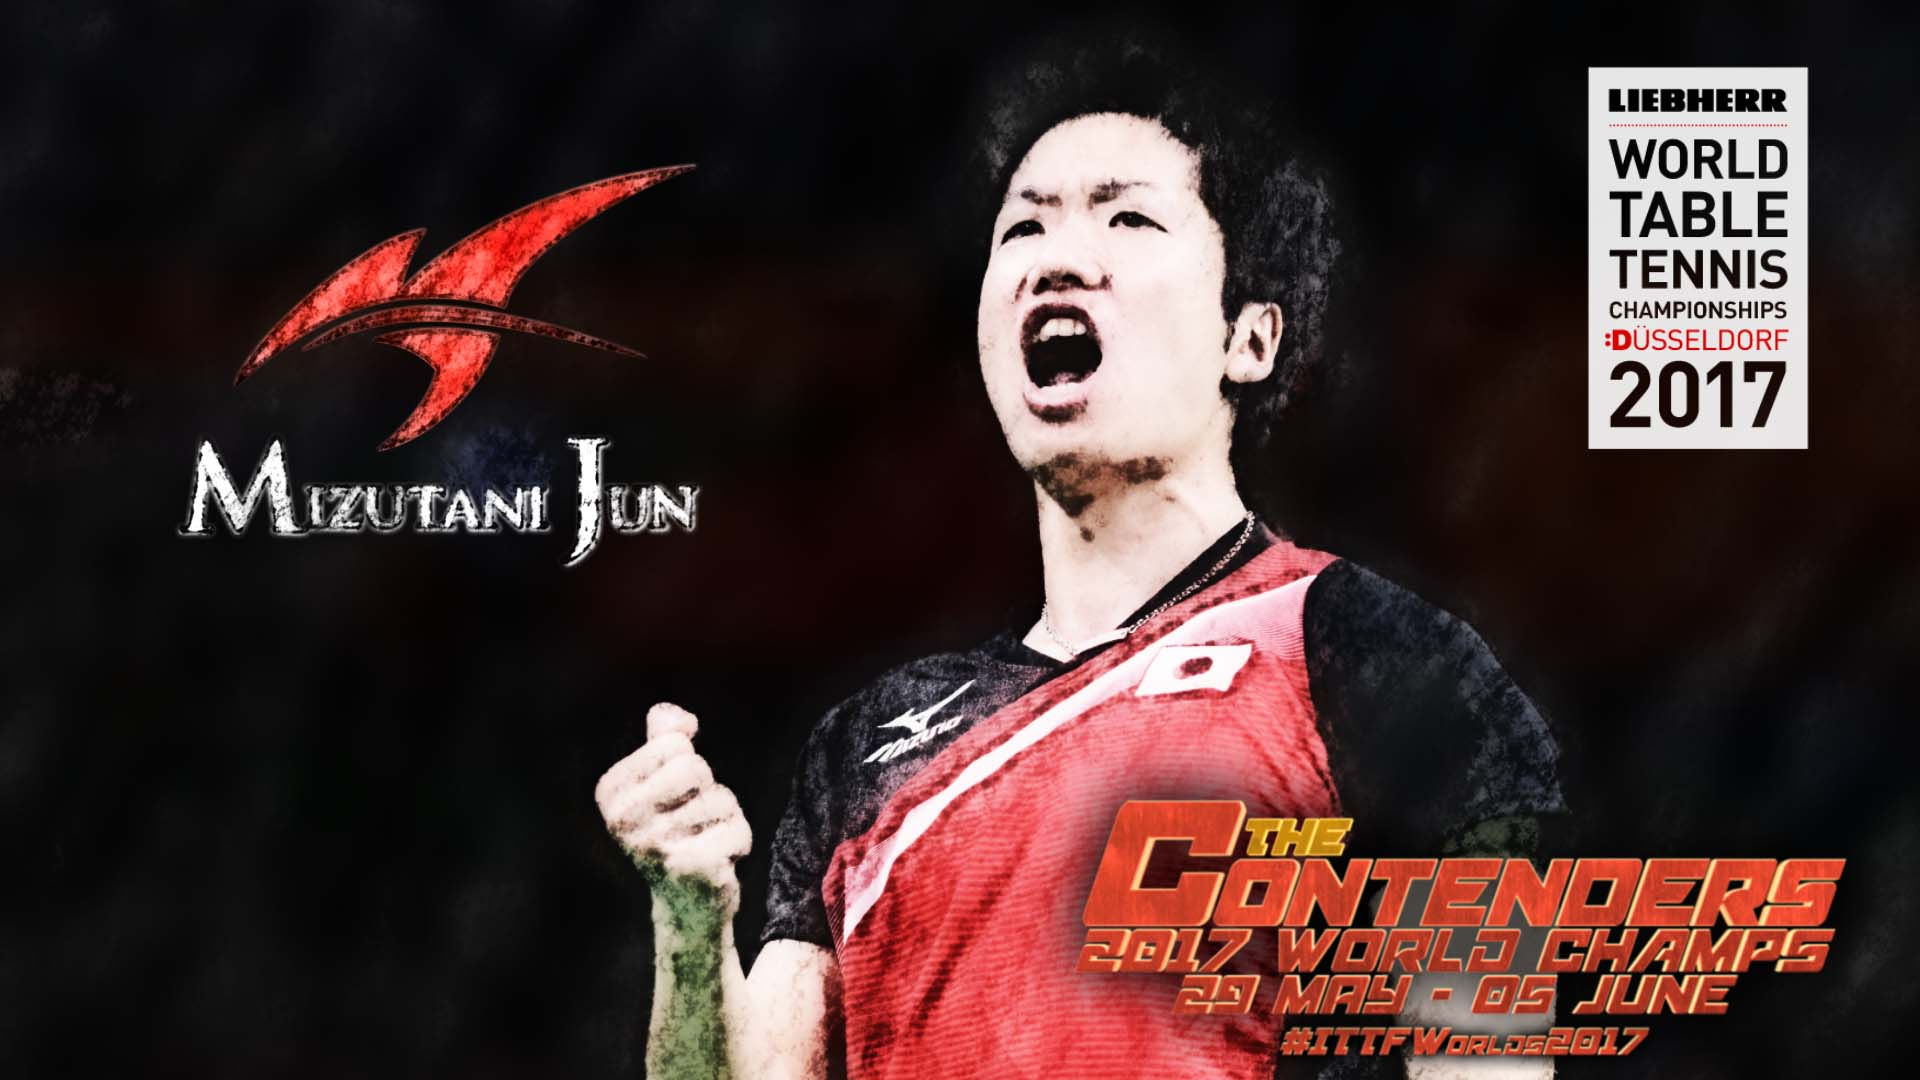 Jun Mizutani set for mighty title effort in Düsseldorf